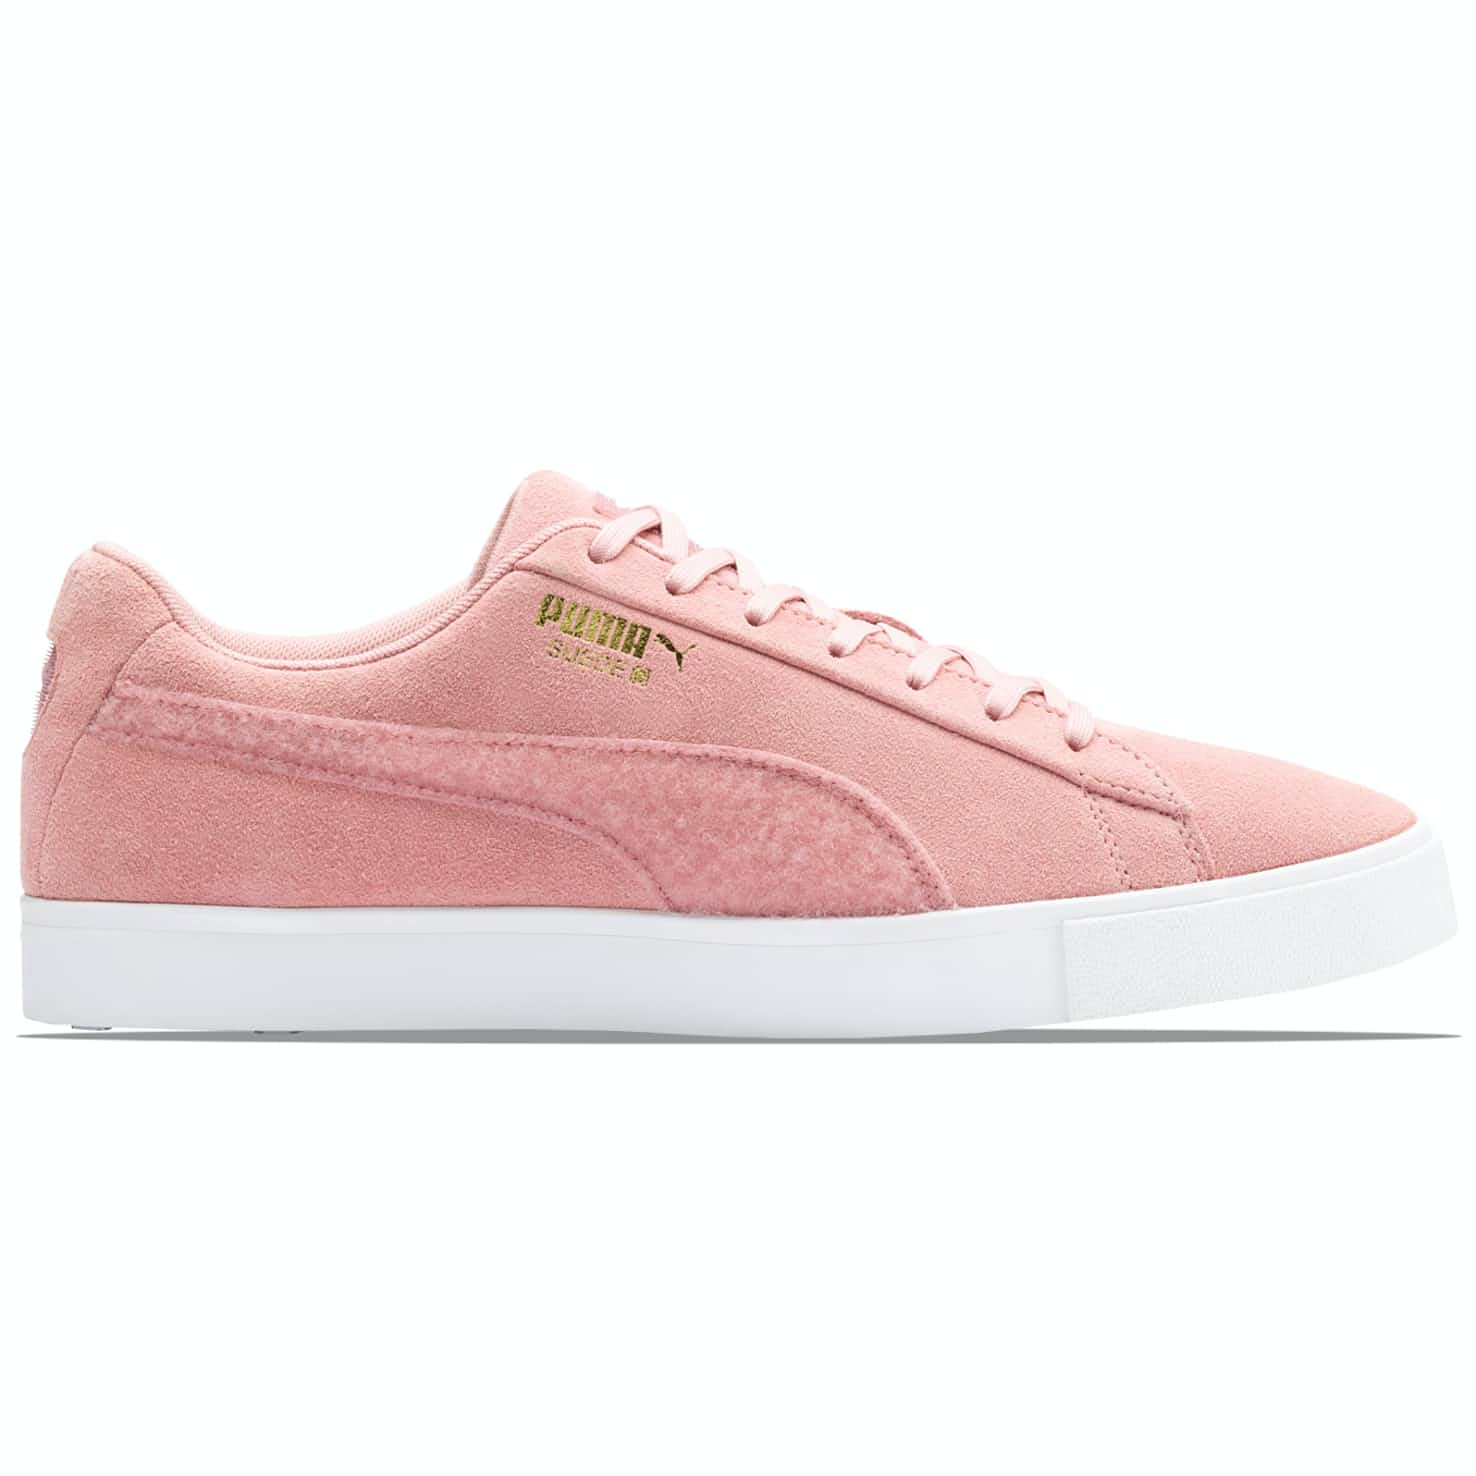 Womens LE Suede Golf Patch Bridal Rose - AW19